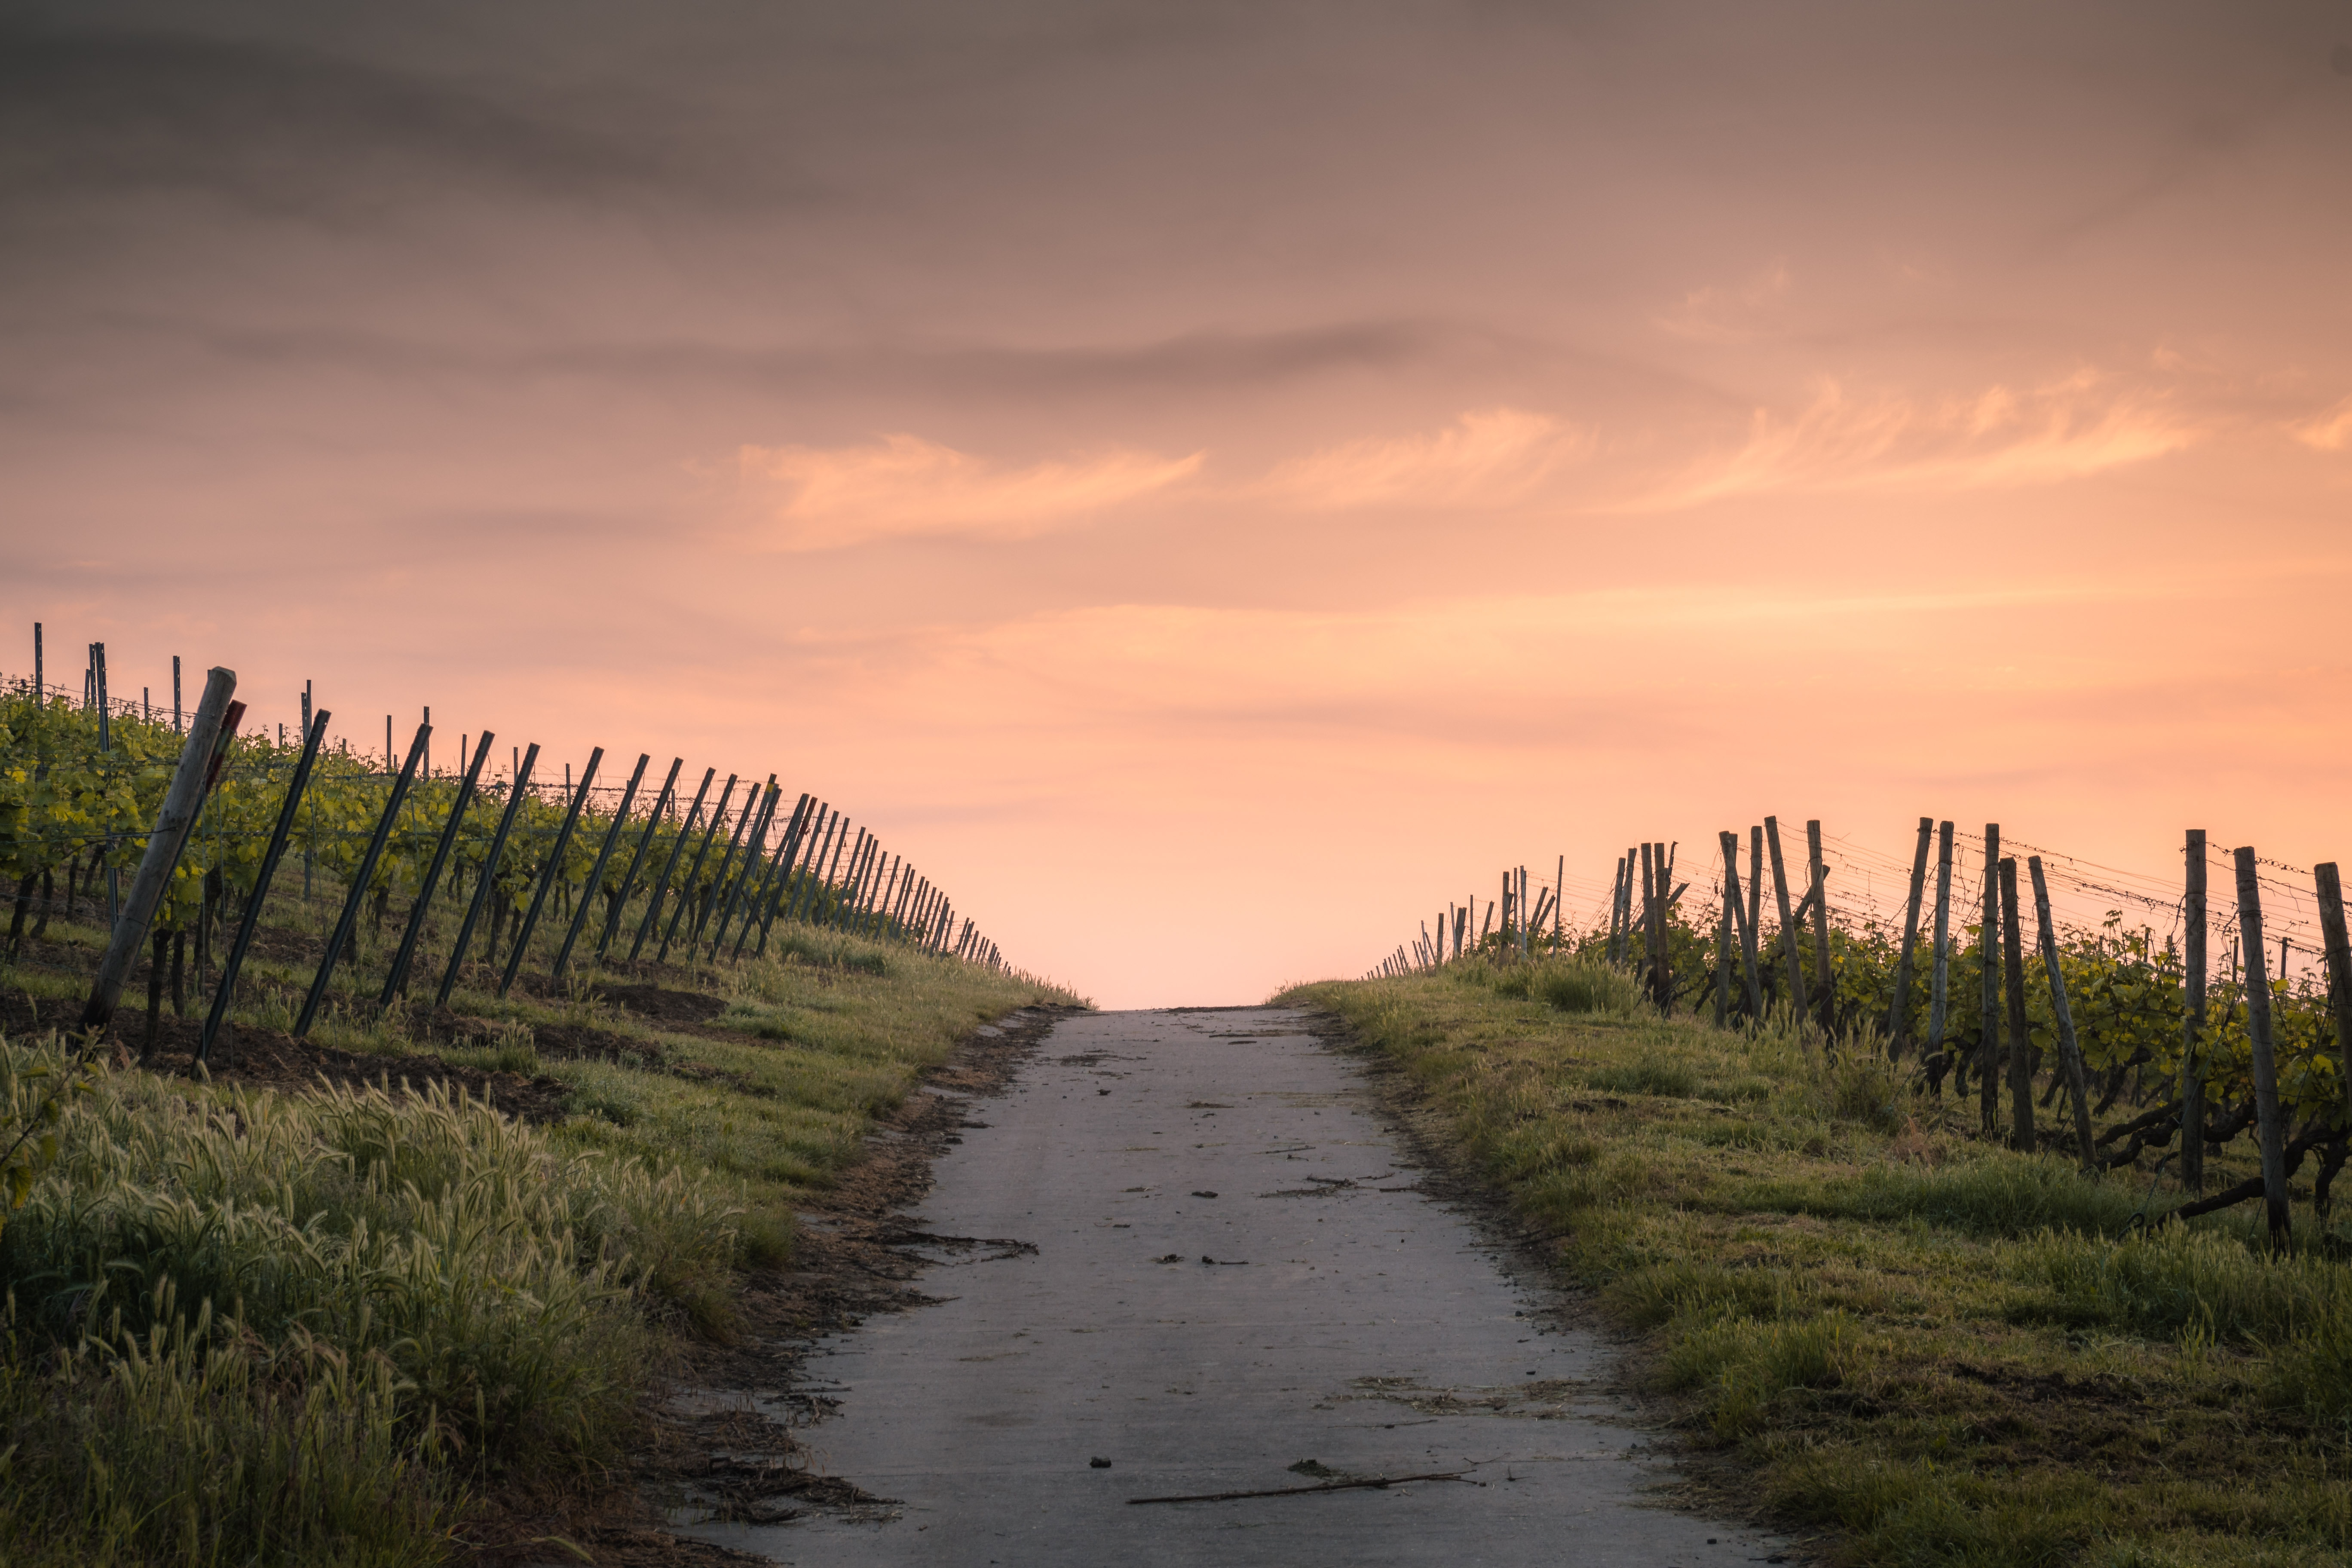 Sunset on path, photo by Karsten Wurth via Unsplash